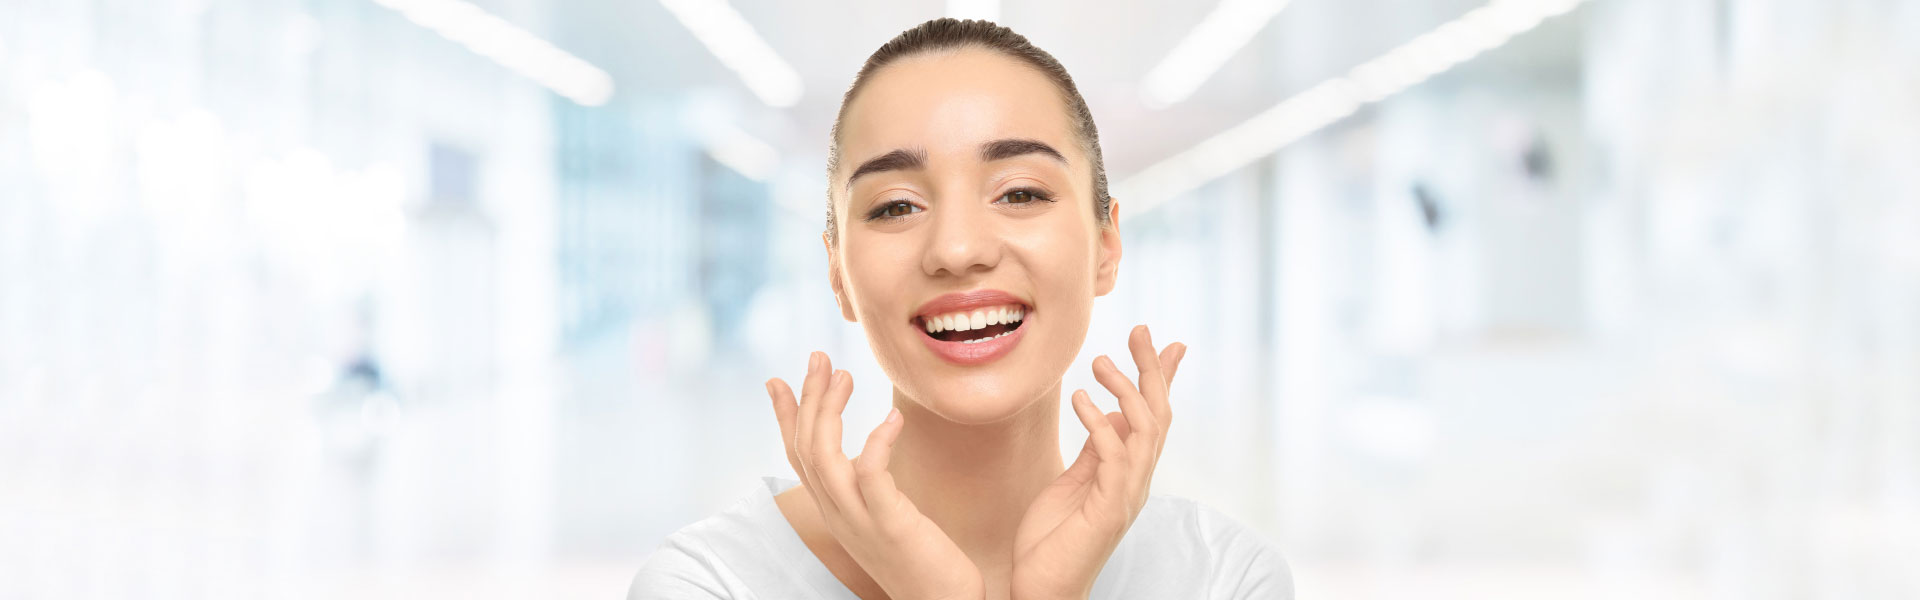 Will My Porcelain Veneers in North Sarasota Look Real?